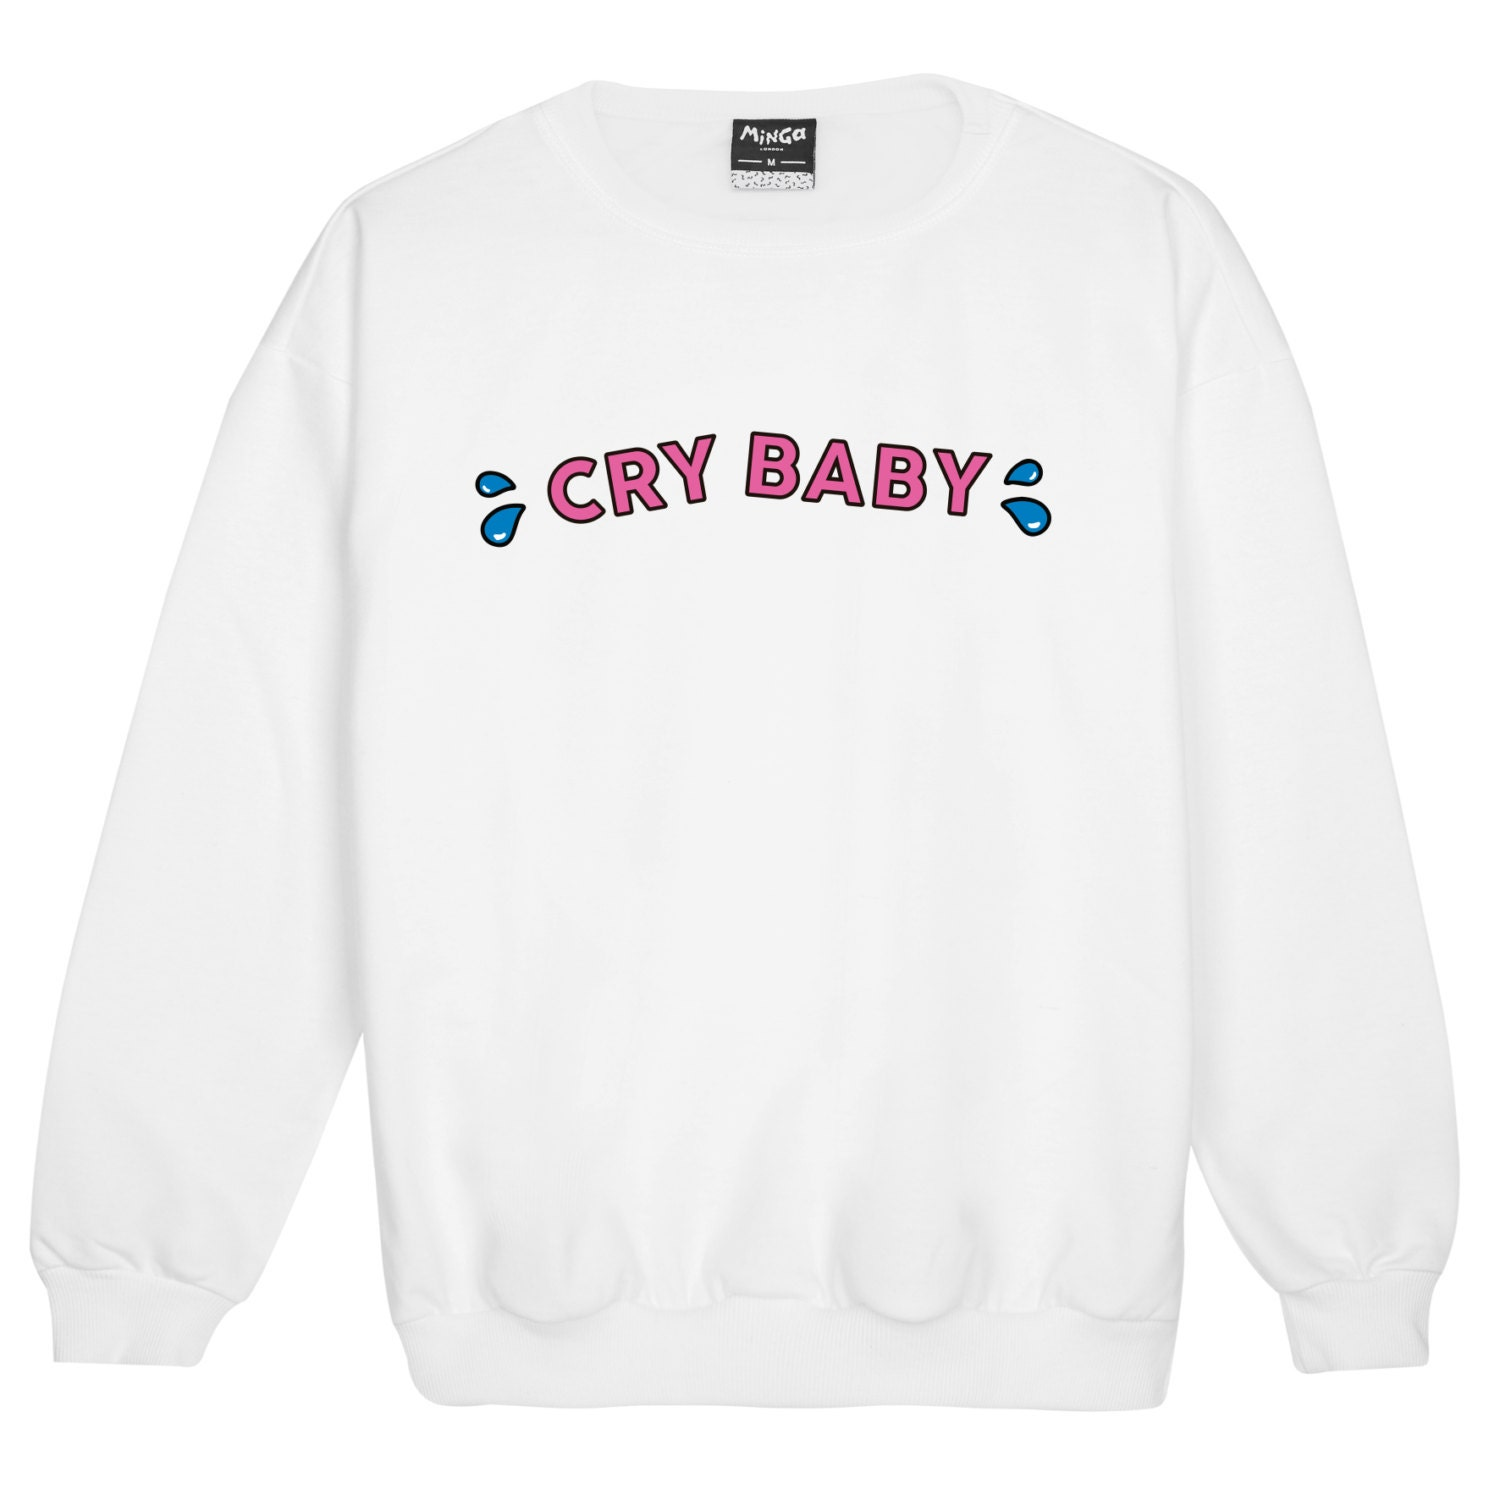 a0a1575c1a8 Cry Baby Sweater Jumper Womens Ladies Fun Tumblr Hipster Swag - Cute ...